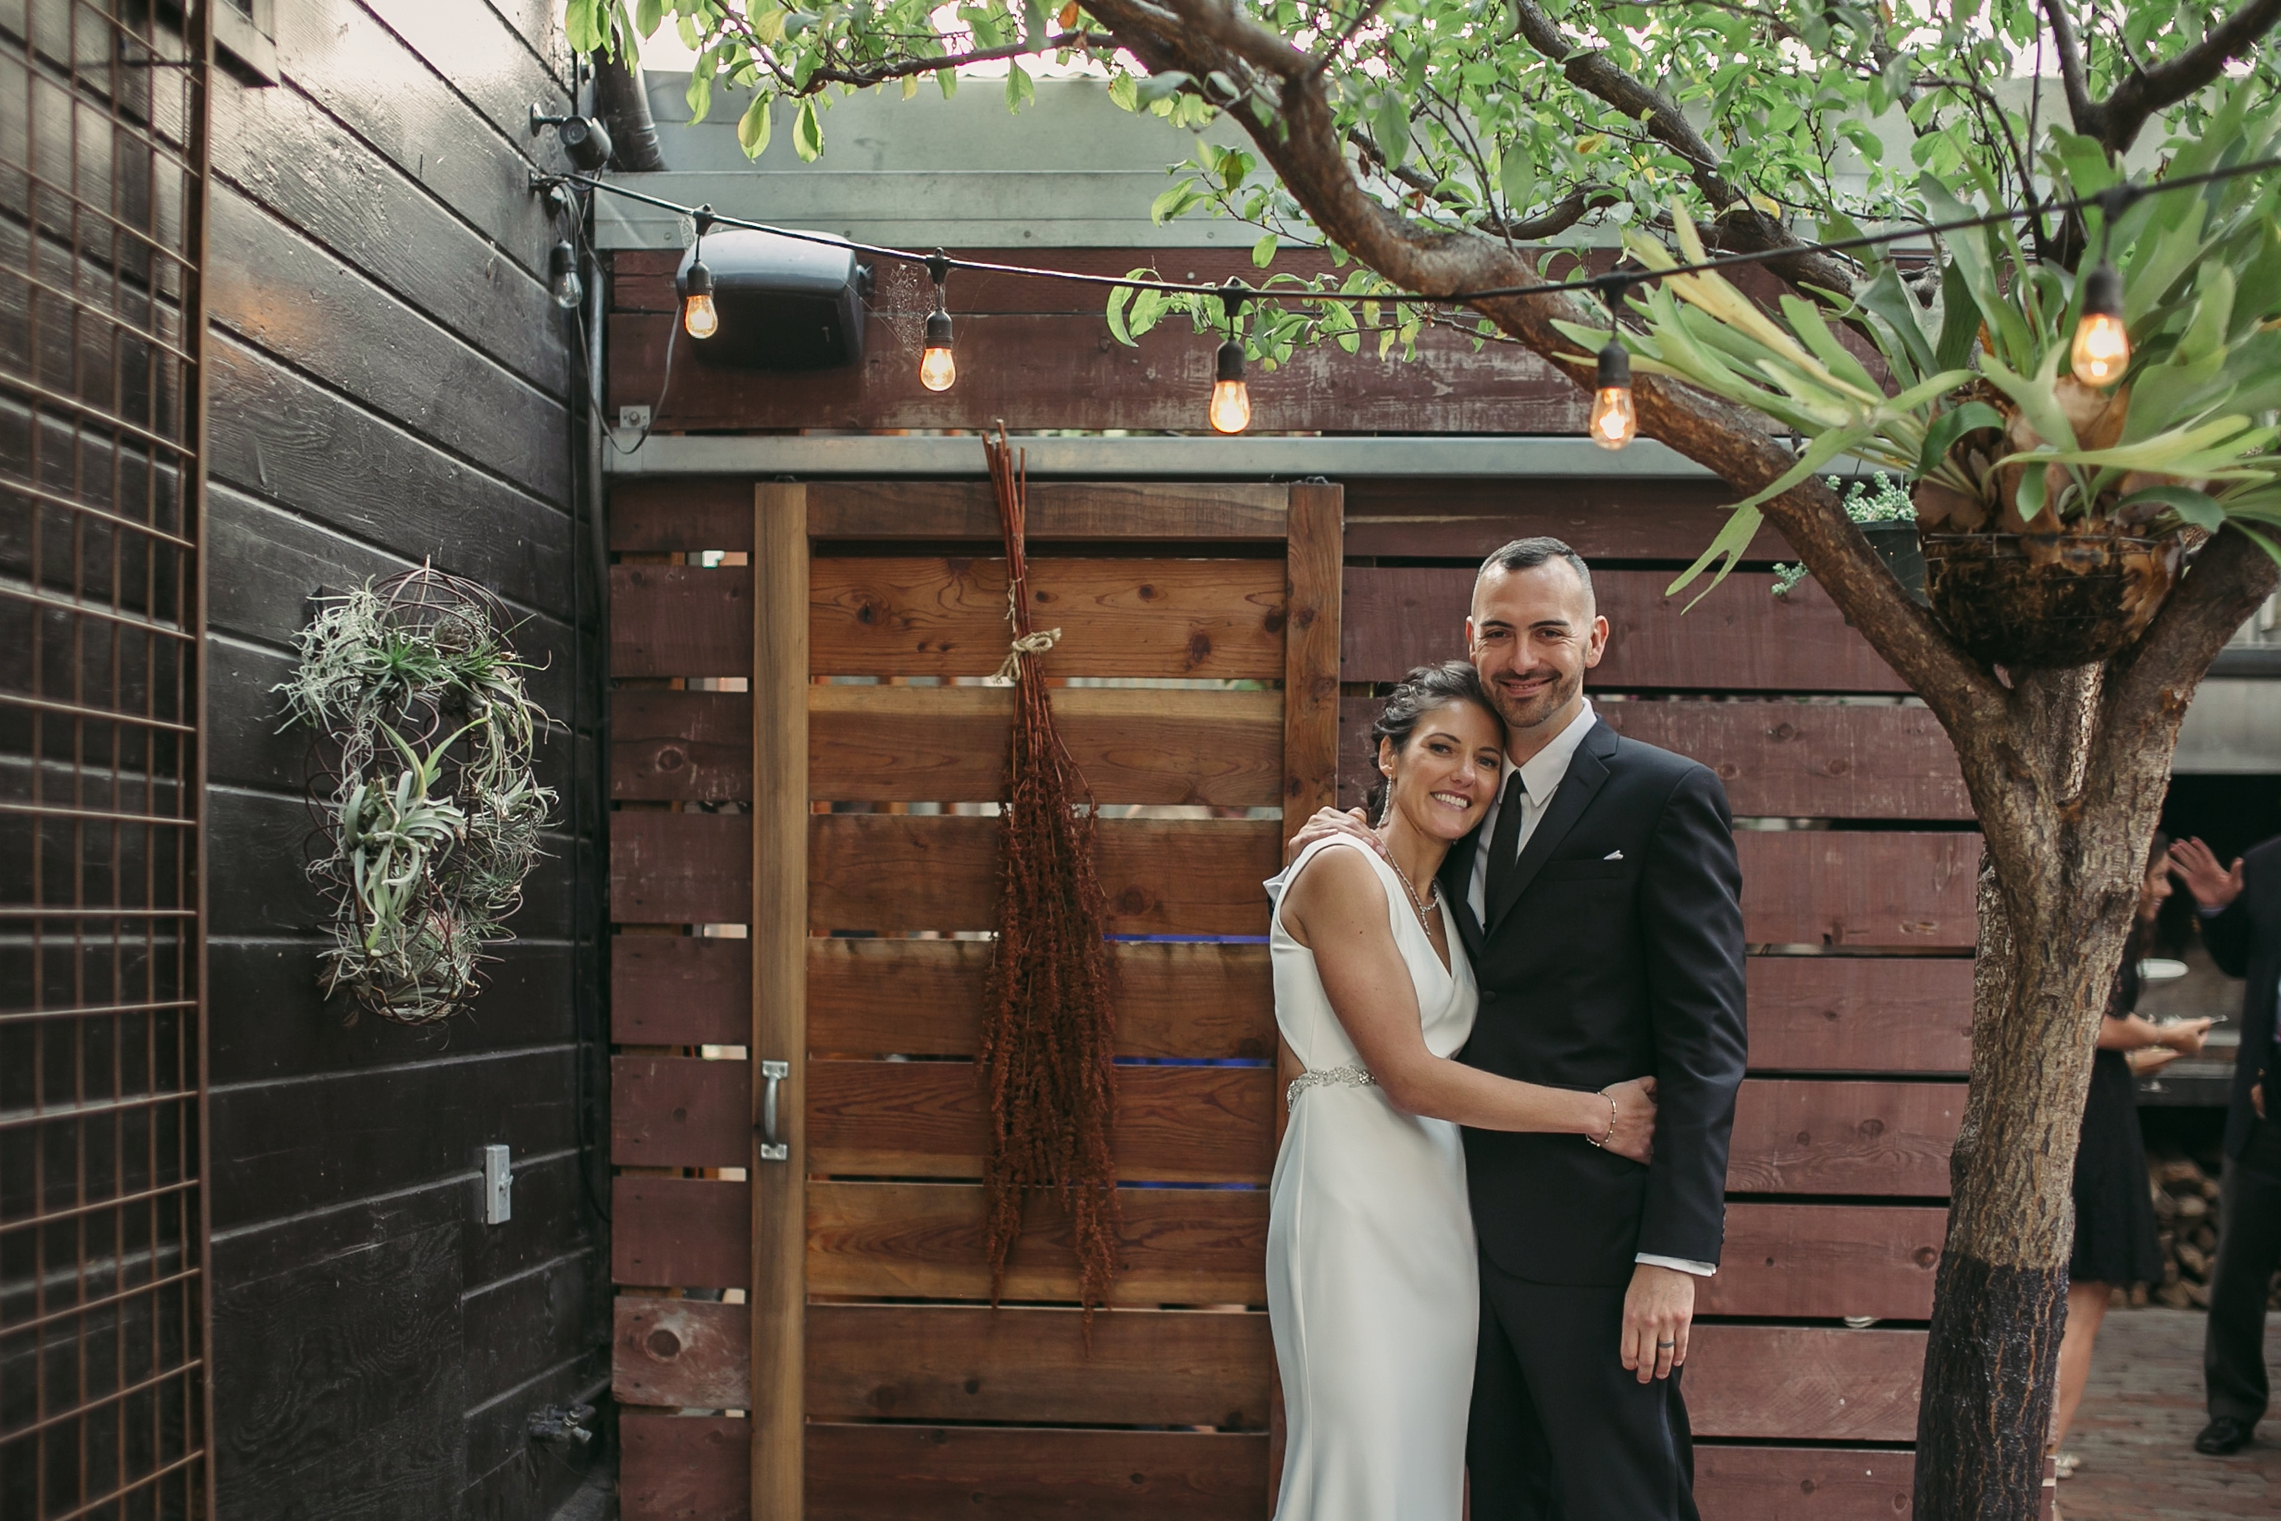 STABLE-CAFE-SF-WEDDING-ENGAGEMENT_0002.jpg